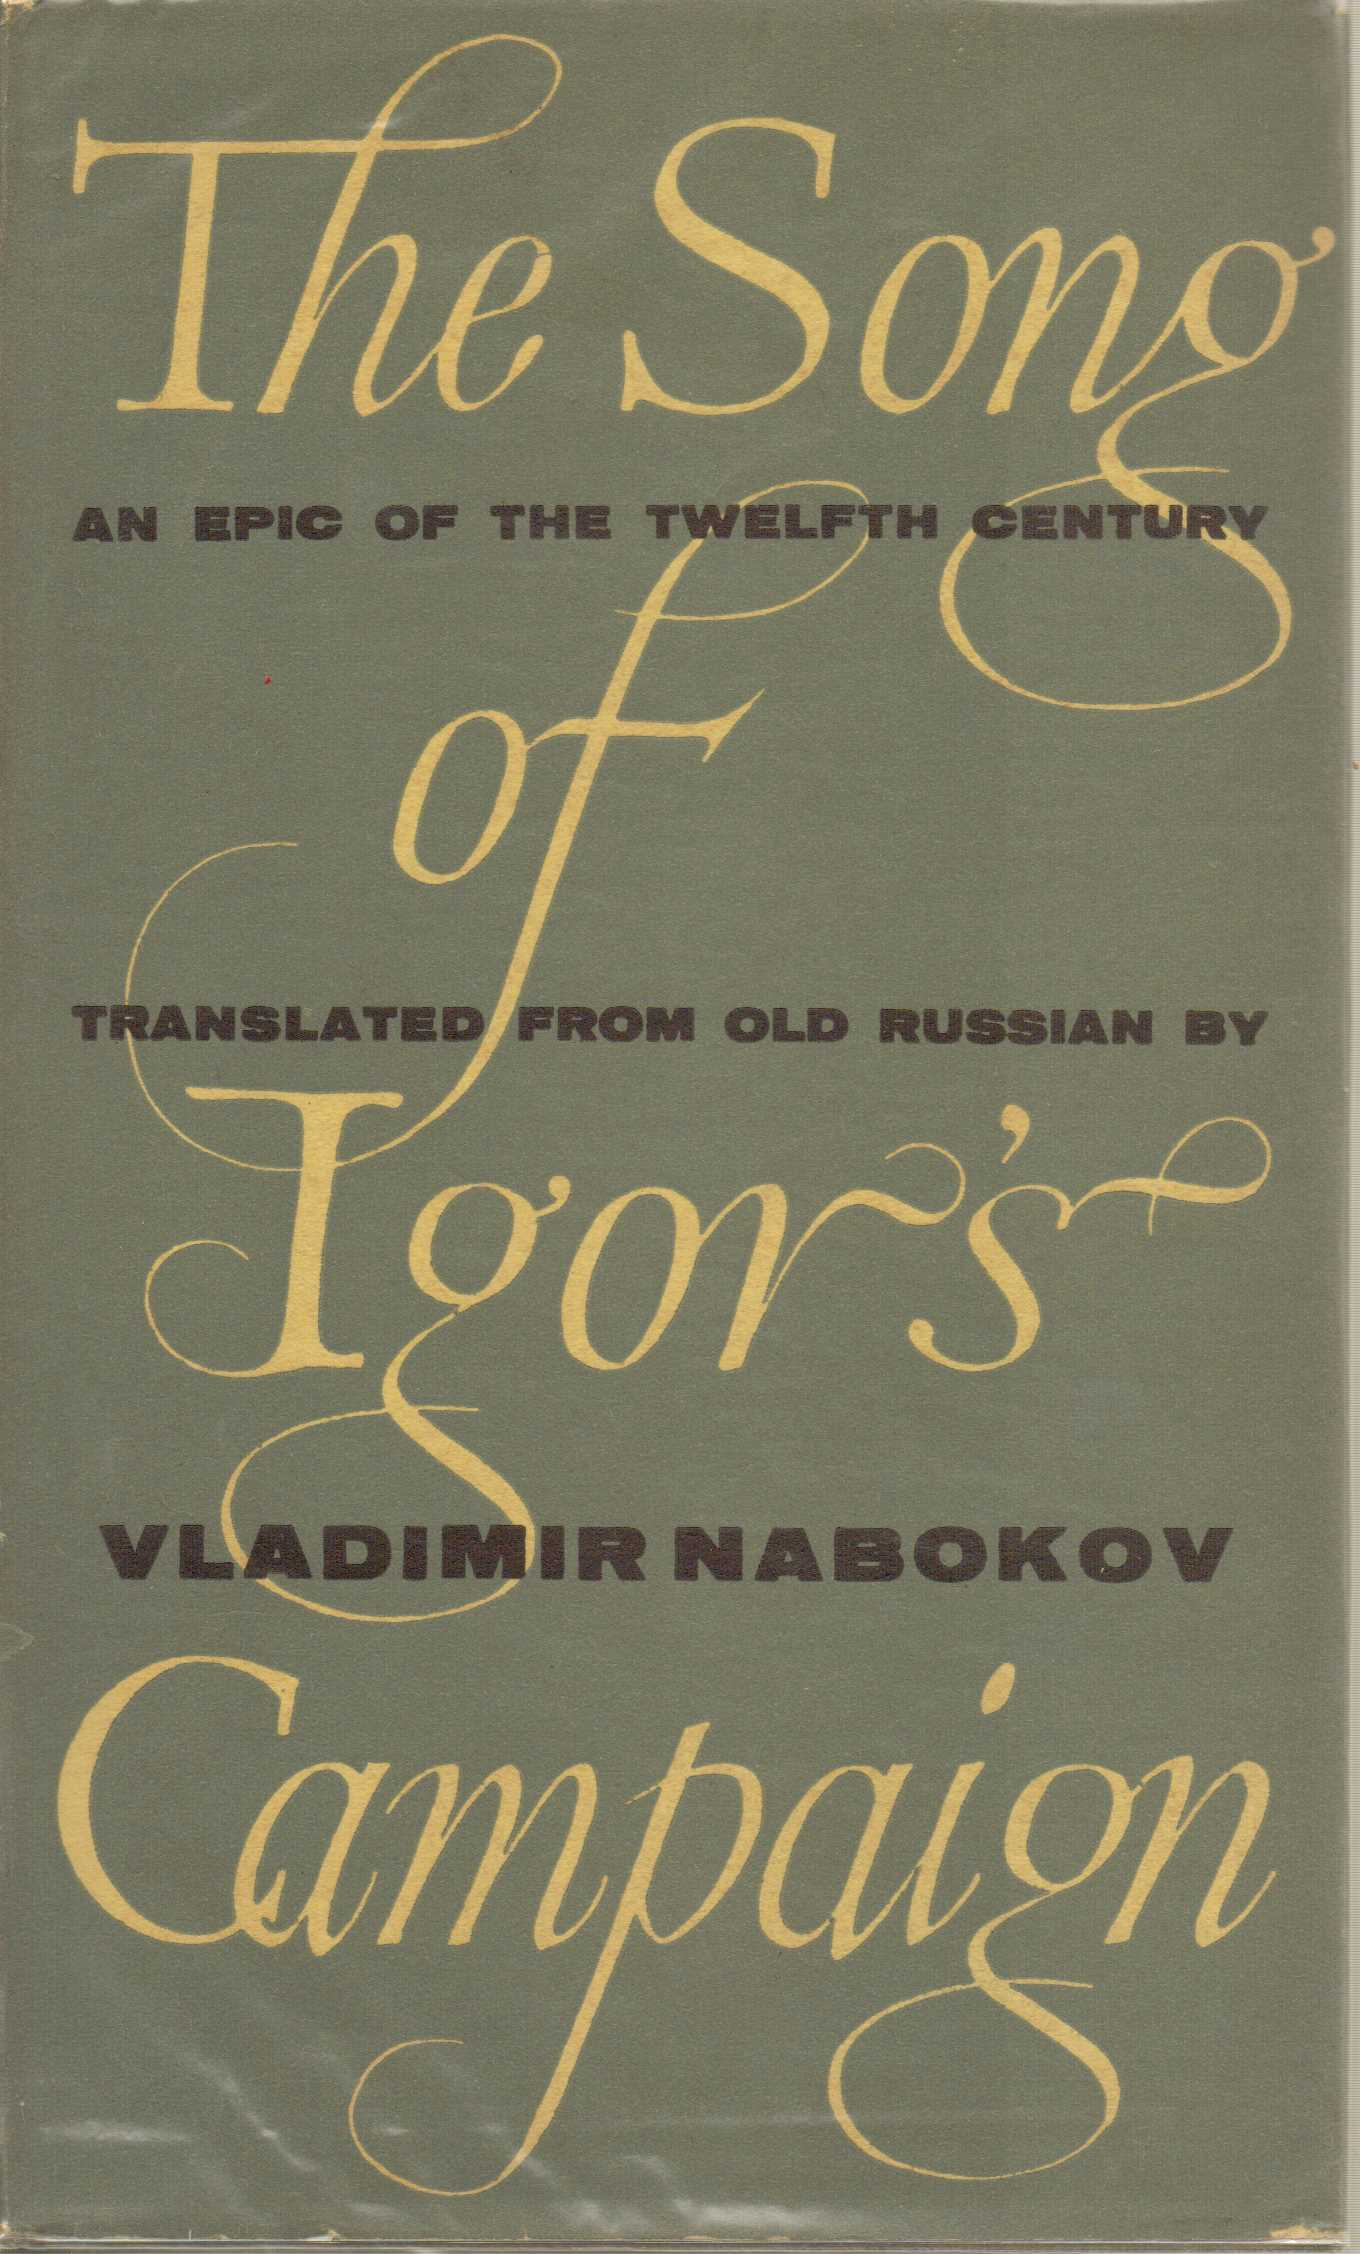 Image for The Song of Igor's Campaign : An Epic of the Twelth Century